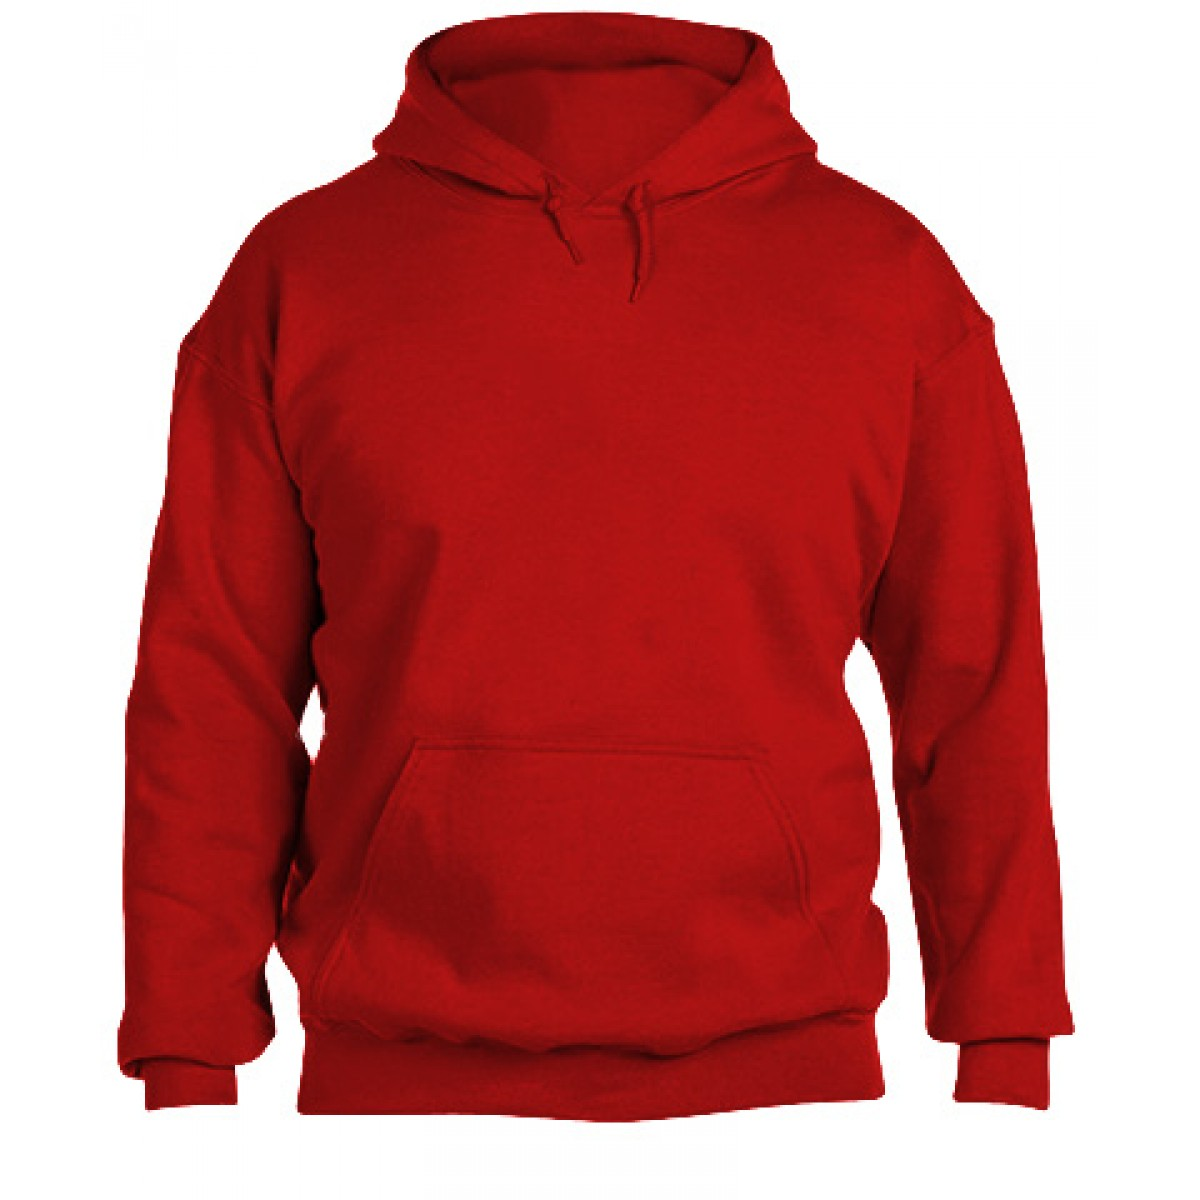 Hooded Sweatshirt 50/50 Heavy Blend -Red-L